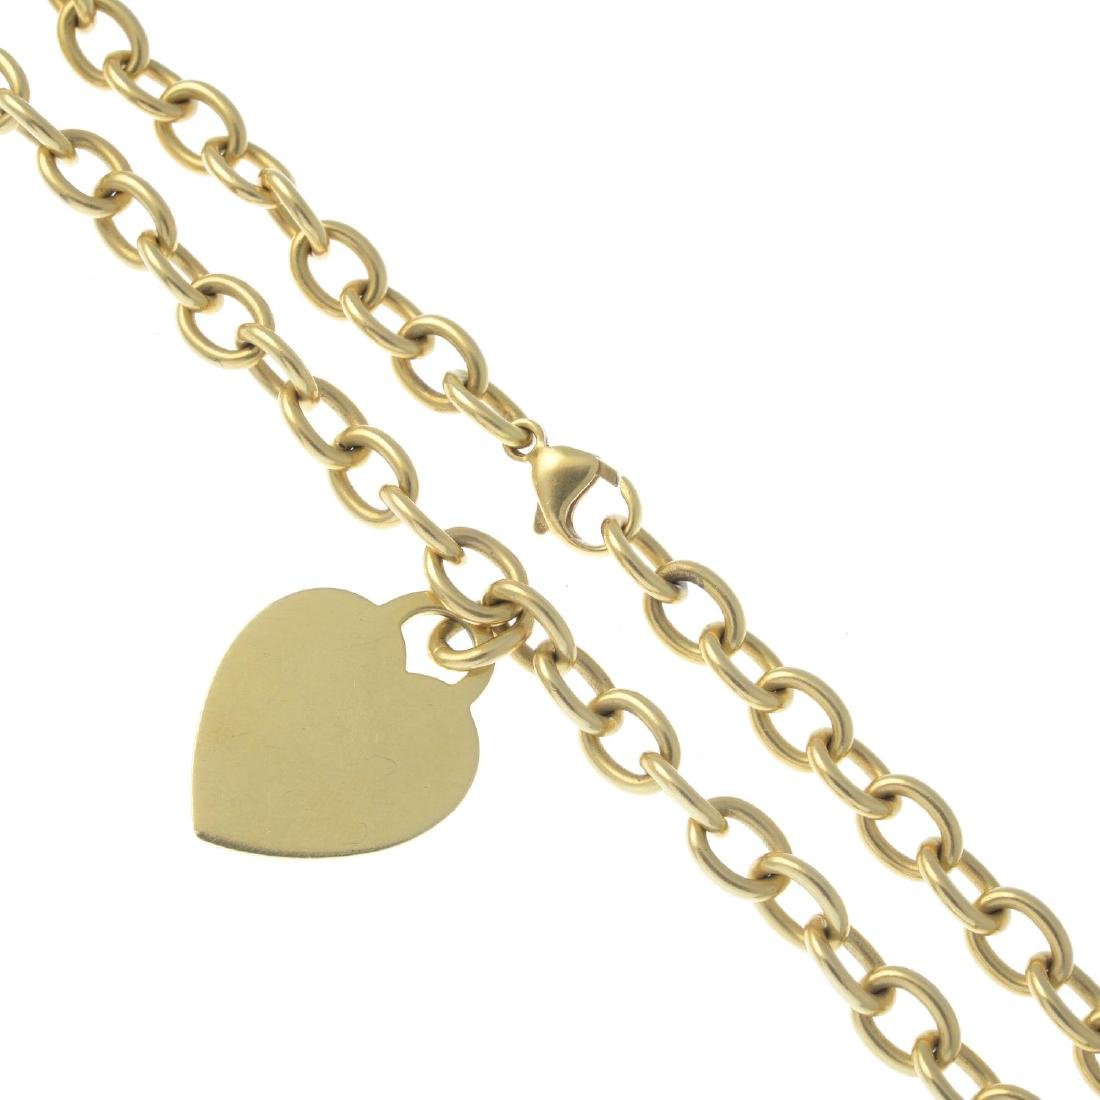 TIFFANY & CO. - a necklace. Designed as a heart-shape